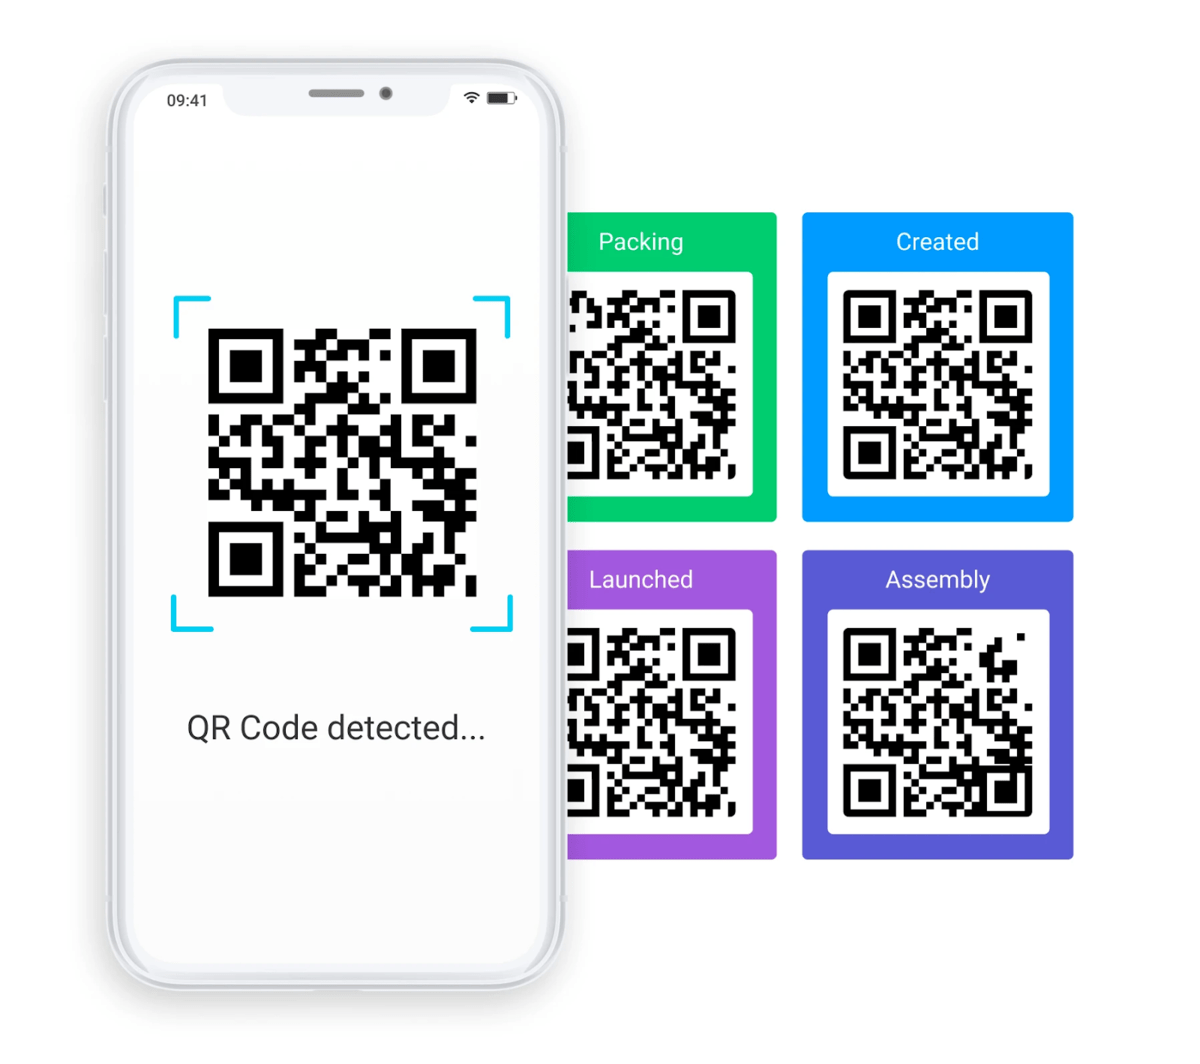 Image of monday.com's QR code for inventory management